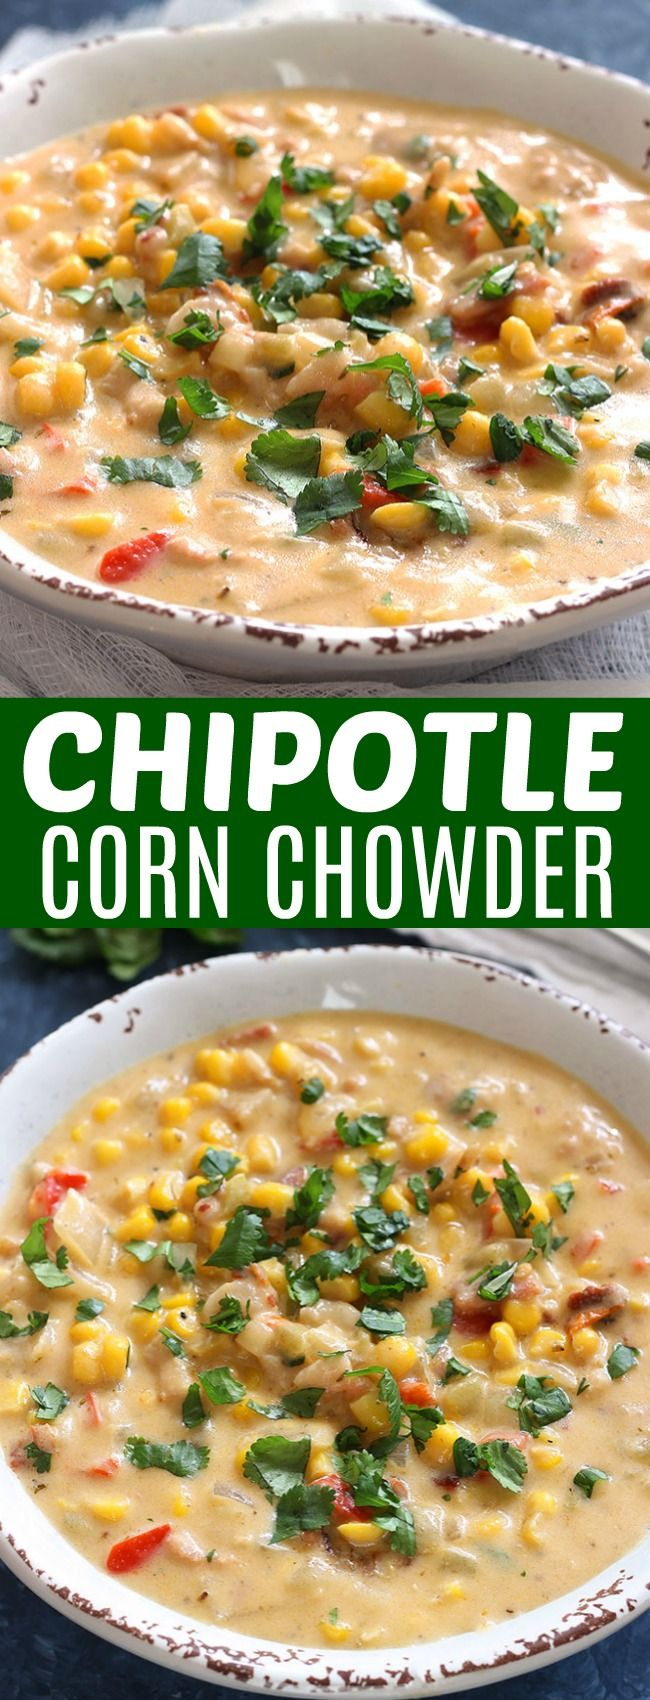 ou have to try this Chipotle Corn Chowder! It's one of my favorite soups and is so flavorful and delicious!